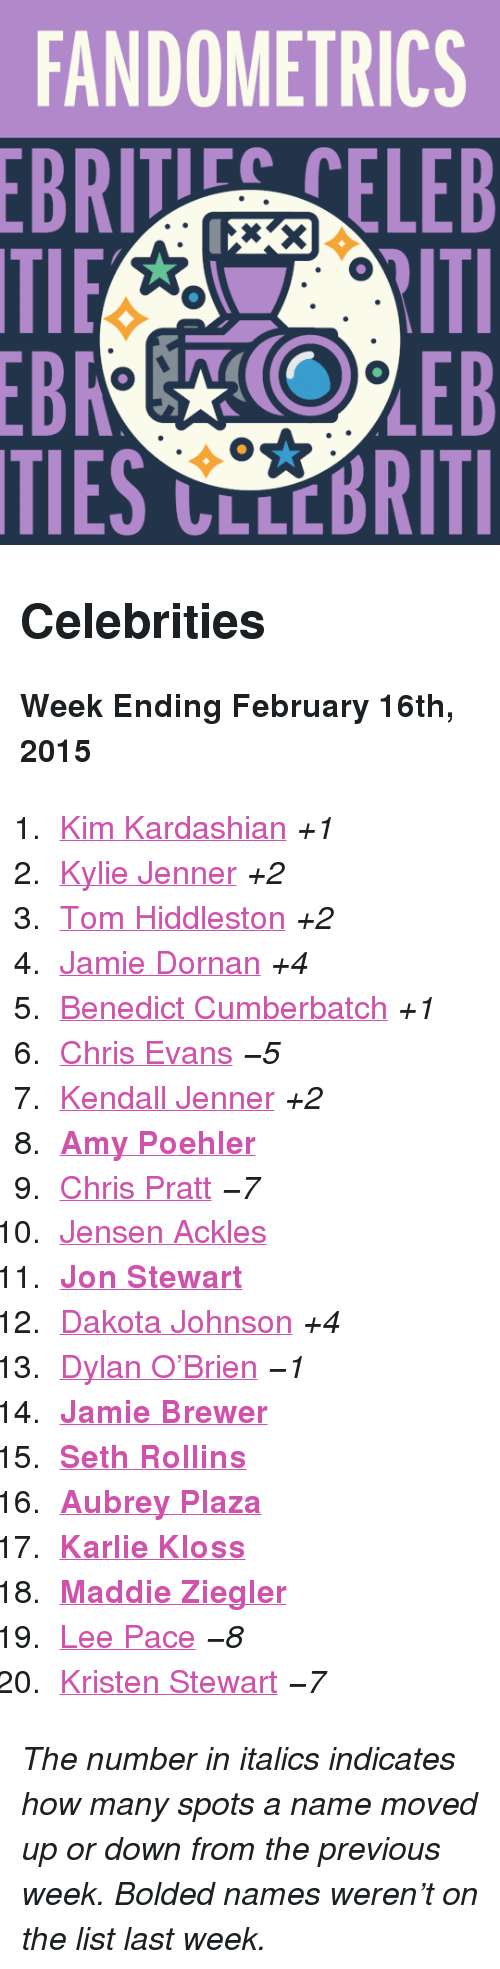 "Amy Poehler, Aubrey Plaza, and Chris Evans: FANDOMETRICS  BRTELEB  TIES CLLCBRITI <h2>Celebrities</h2><p><b>Week Ending February 16th, 2015</b></p><ol><li><a href=""http://www.tumblr.com/search/kim%20kardashian"">Kim Kardashian</a> <i>+1</i></li><li><a href=""http://www.tumblr.com/search/kylie%20jenner"">Kylie Jenner</a> <i>+2</i></li><li><a href=""http://www.tumblr.com/search/tom%20hiddleston"">Tom Hiddleston</a> <i>+2</i></li><li><a href=""http://www.tumblr.com/search/jamie%20dornan"">Jamie Dornan</a> <i>+4</i></li><li><a href=""http://www.tumblr.com/search/benedict%20cumberbatch"">Benedict Cumberbatch</a> <i>+1</i></li><li><a href=""http://www.tumblr.com/search/chris%20evans"">Chris Evans</a> <i>−5</i></li><li><a href=""http://www.tumblr.com/search/kendall%20jenner"">Kendall Jenner</a> <i>+2</i></li><li><a href=""http://www.tumblr.com/search/amy%20poehler""><b>Amy Poehler</b></a></li><li><a href=""http://www.tumblr.com/search/chris%20pratt"">Chris Pratt</a> <i>−7</i></li><li><a href=""http://www.tumblr.com/search/jensen%20ackles"">Jensen Ackles</a></li><li><a href=""http://www.tumblr.com/search/jon%20stewart""><b>Jon Stewart</b></a></li><li><a href=""http://www.tumblr.com/search/dakota%20johnson"">Dakota Johnson</a> <i>+4</i></li><li><a href=""http://www.tumblr.com/search/dylan%20o'brien"">Dylan O'Brien</a> <i>−1</i></li><li><a href=""http://www.tumblr.com/search/jamie%20brewer""><b>Jamie Brewer</b></a></li><li><a href=""http://www.tumblr.com/search/seth%20rollins""><b>Seth Rollins</b></a></li><li><a href=""http://www.tumblr.com/search/aubrey%20plaza""><b>Aubrey Plaza</b></a></li><li><a href=""http://www.tumblr.com/search/karlie%20kloss""><b>Karlie Kloss</b></a></li><li><a href=""http://www.tumblr.com/search/maddie%20ziegler""><b>Maddie Ziegler</b></a></li><li><a href=""http://www.tumblr.com/search/lee%20pace"">Lee Pace</a> <i>−8</i></li><li><a href=""http://www.tumblr.com/search/kristen%20stewart"">Kristen Stewart</a> <i>−7</i></li></ol><p><i>The number in italics indicates how many spots a name moved up or down from the previous week. Bolded names weren't on the list last week.</i></p>"